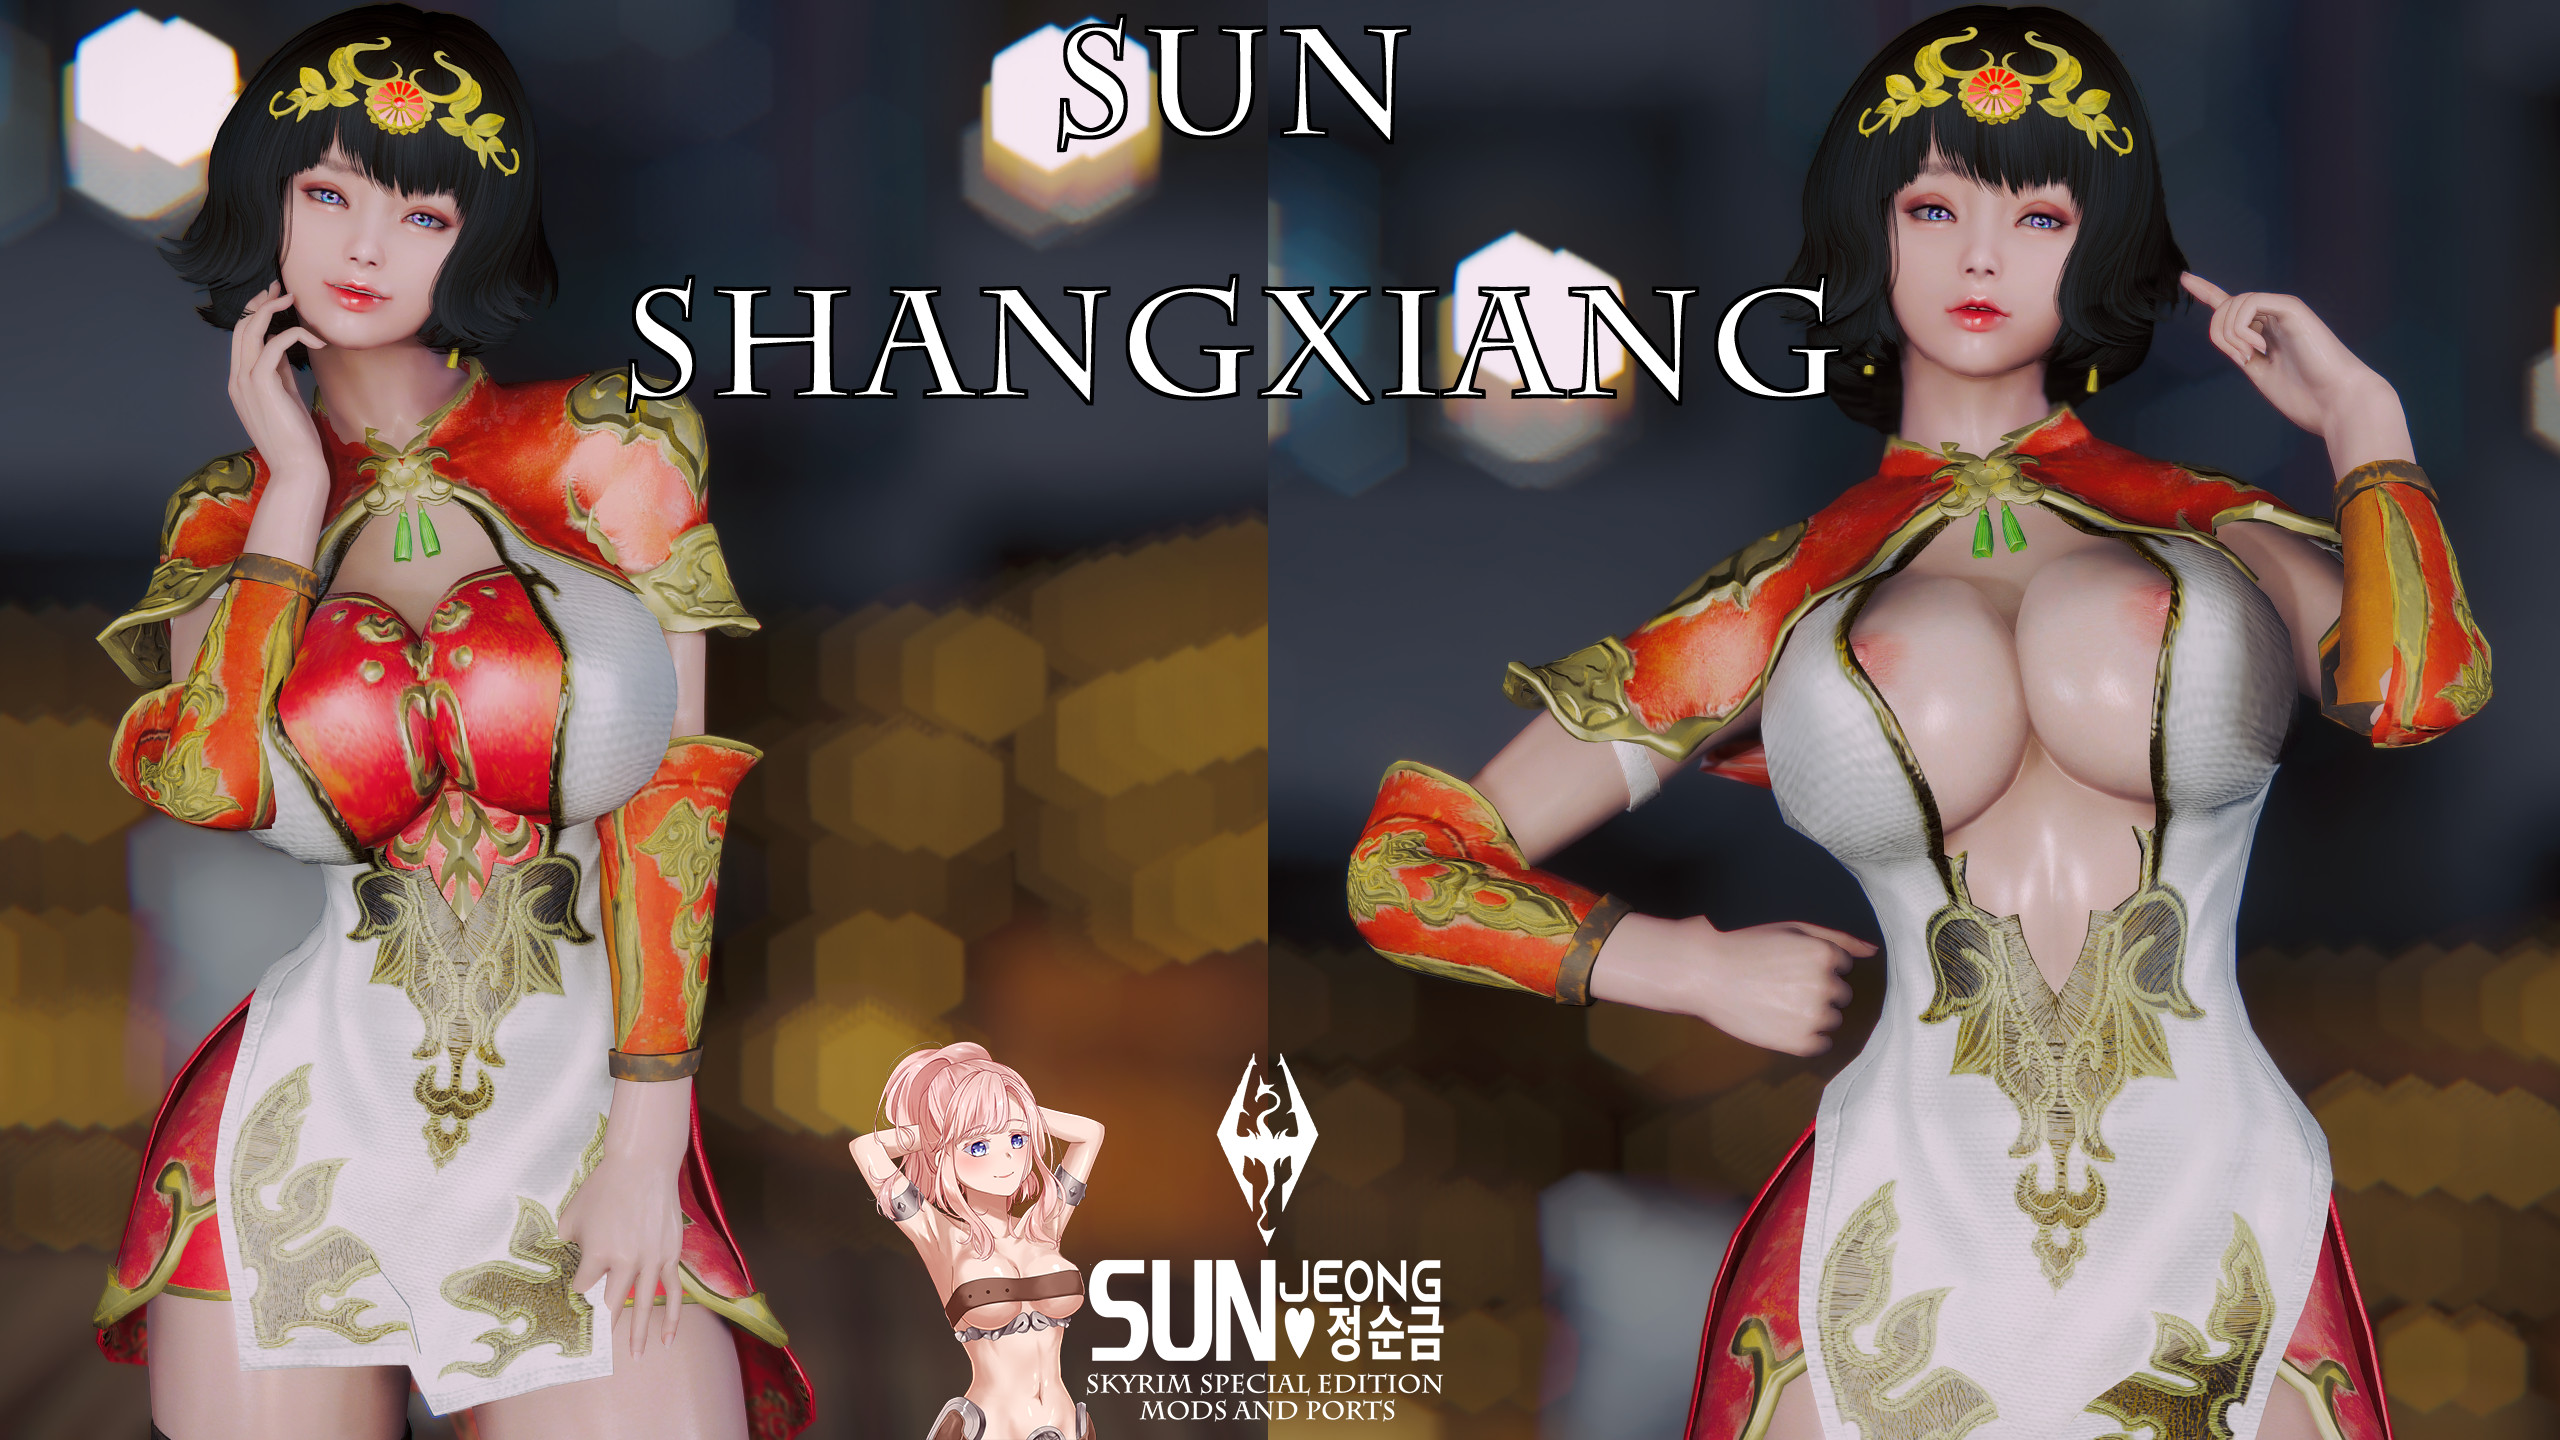 [Christine] Sun Shangxiang Outfit